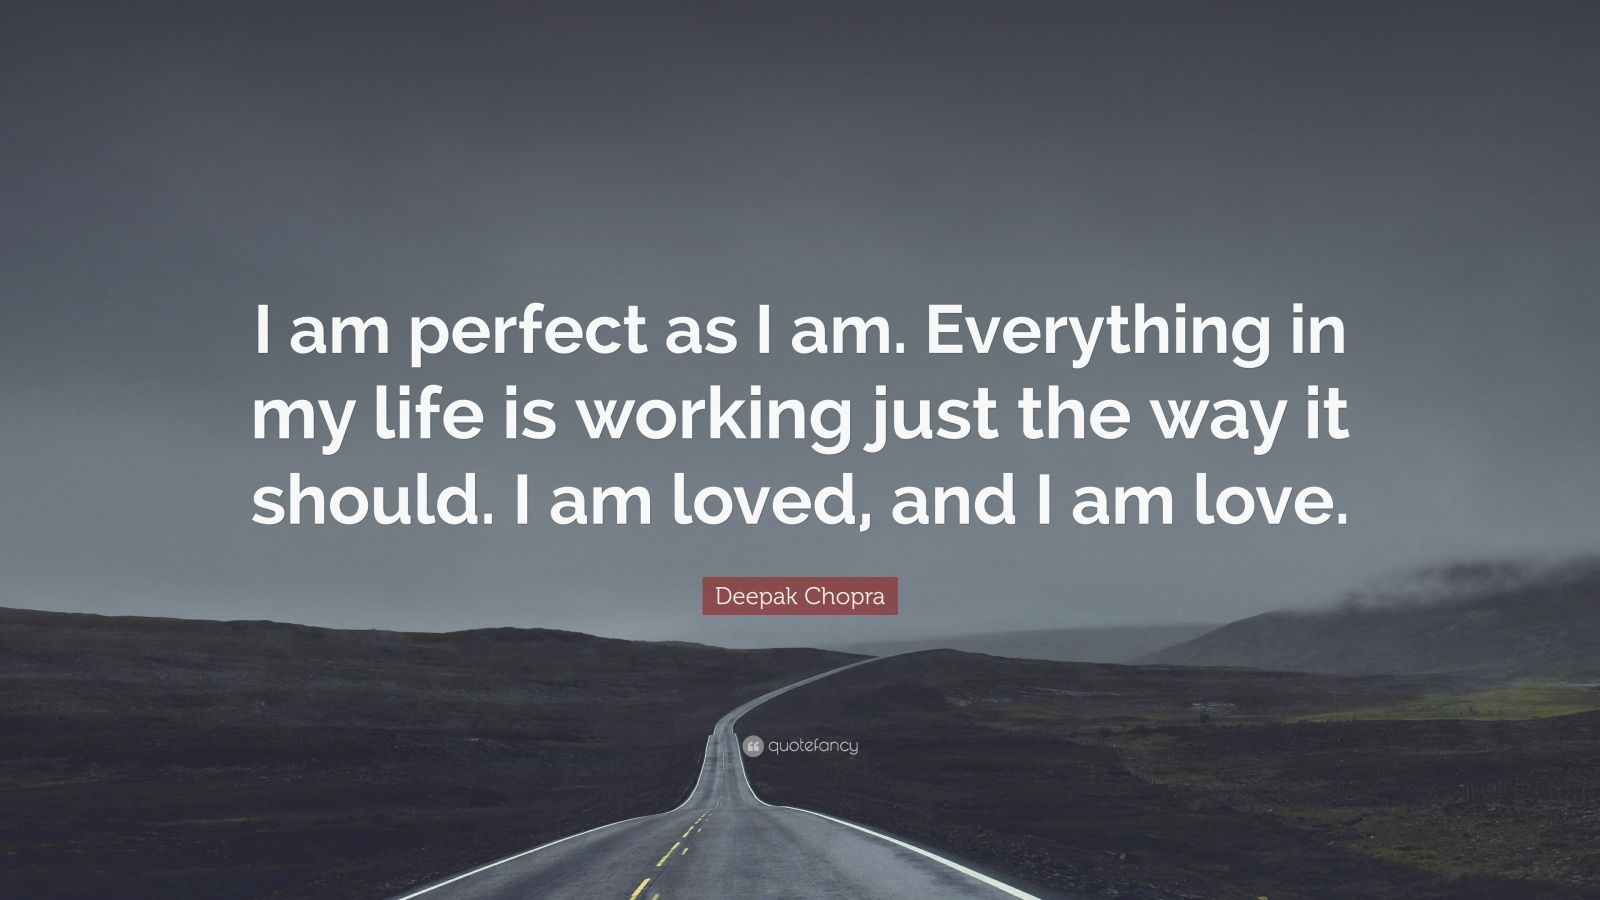 """Deepak Chopra Quote: """"I am perfect as I am. Everything in my life is working just the way it should. I am loved, and I am love."""""""